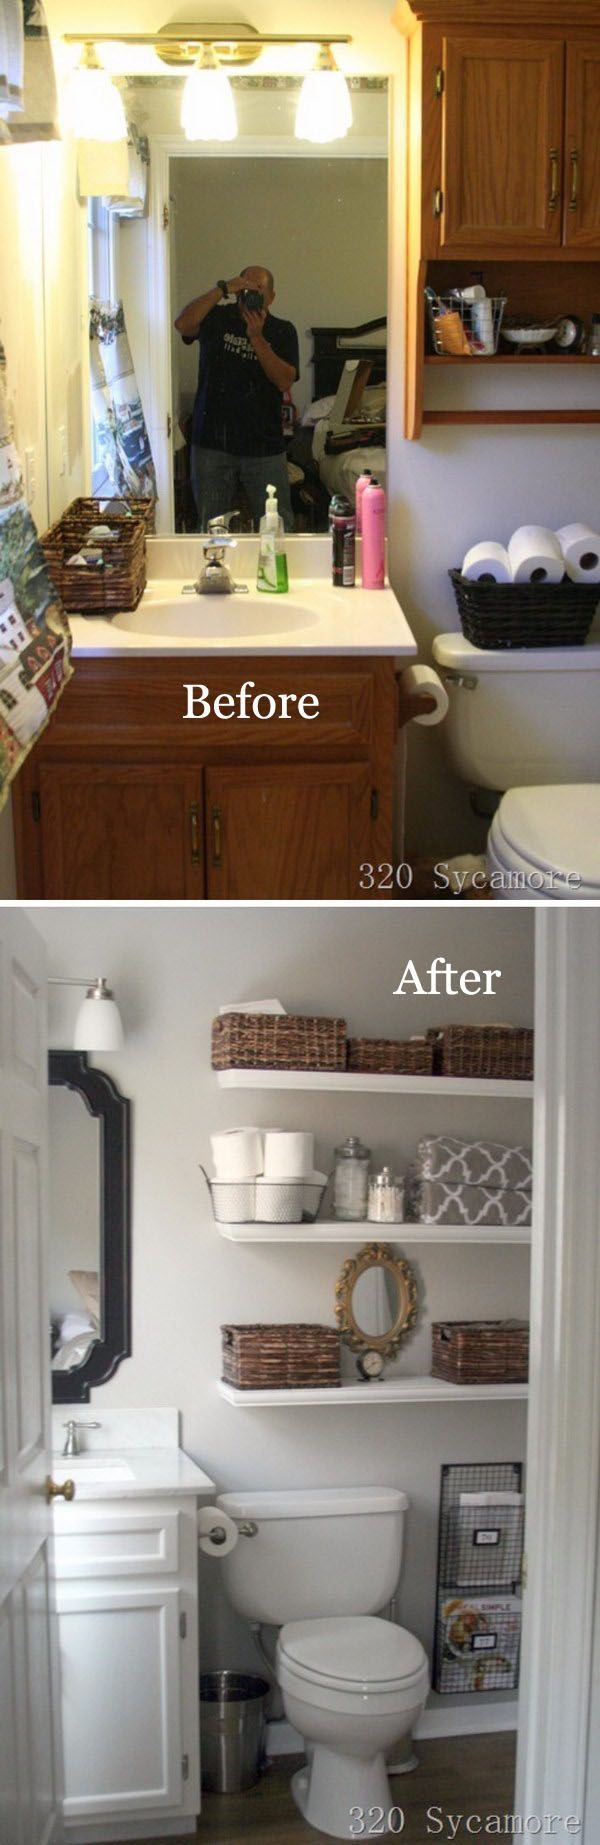 Images Photos Before and After Awesome Bathroom Makeovers